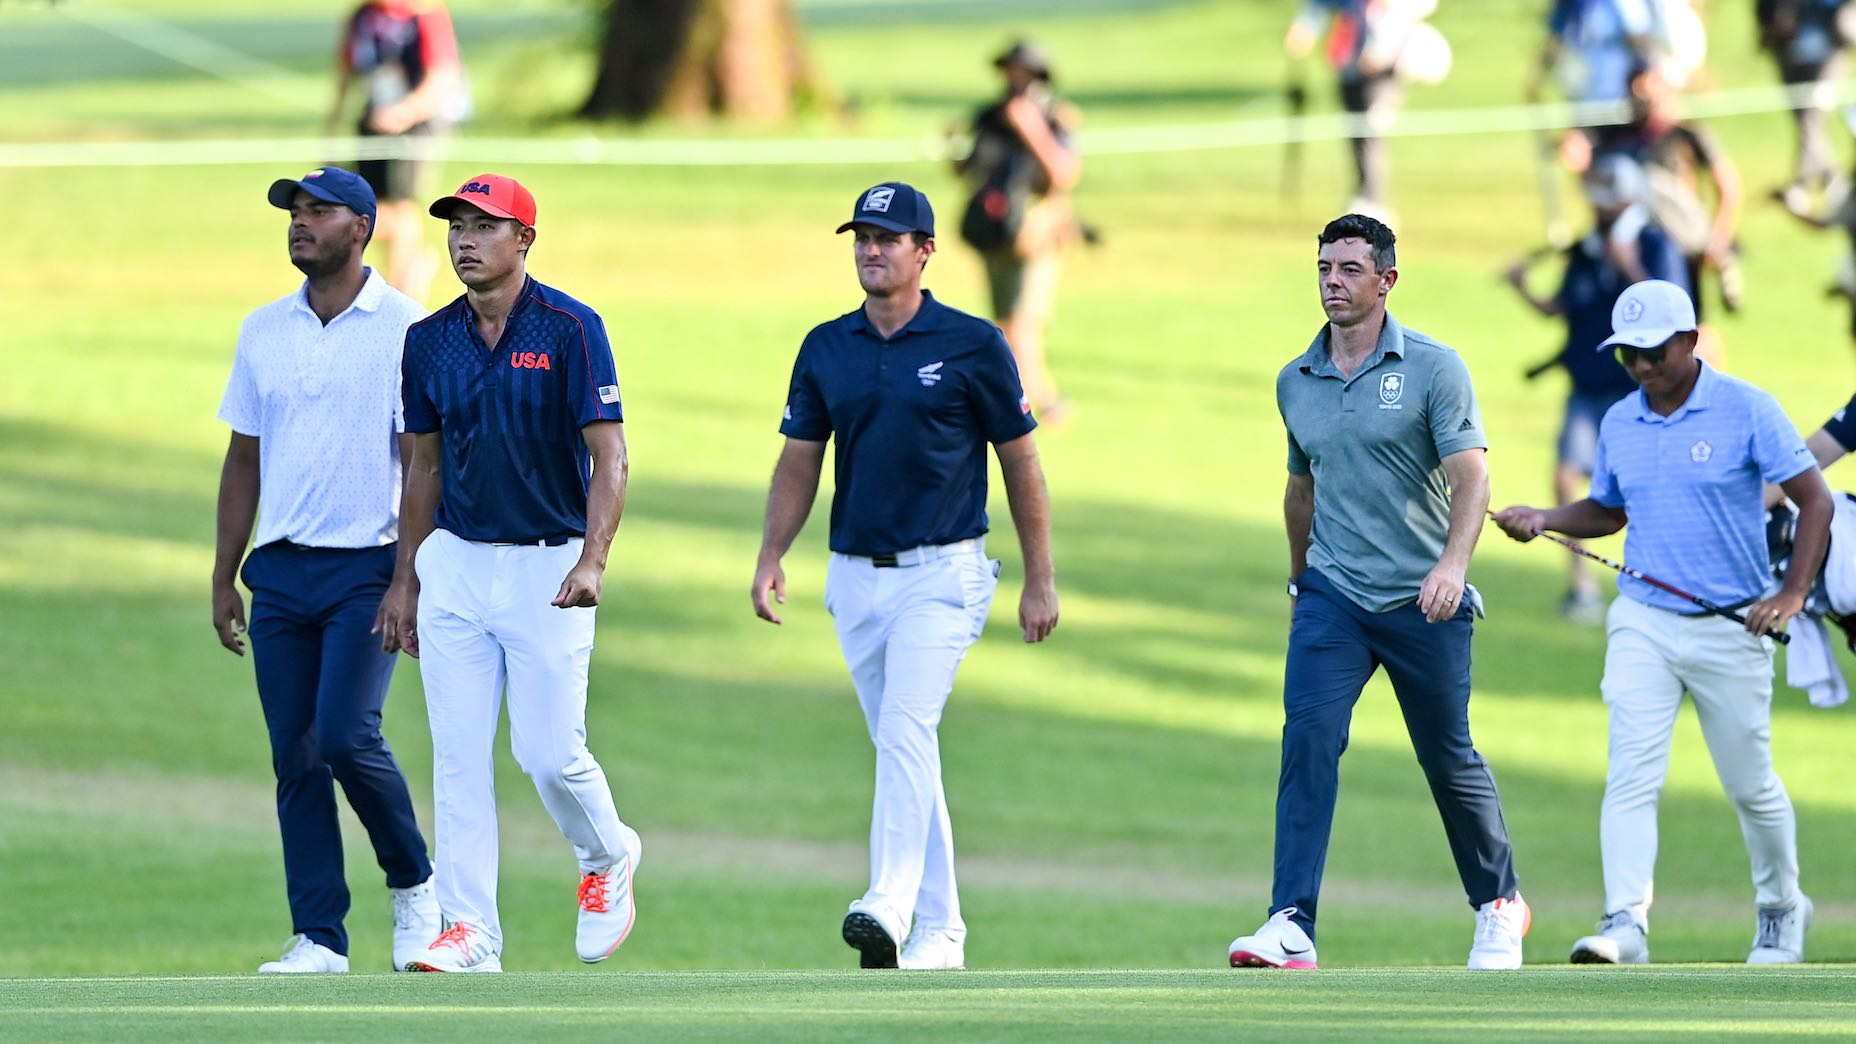 Seven players headed to extra holes to determine a bronze medalist at the Olympics.